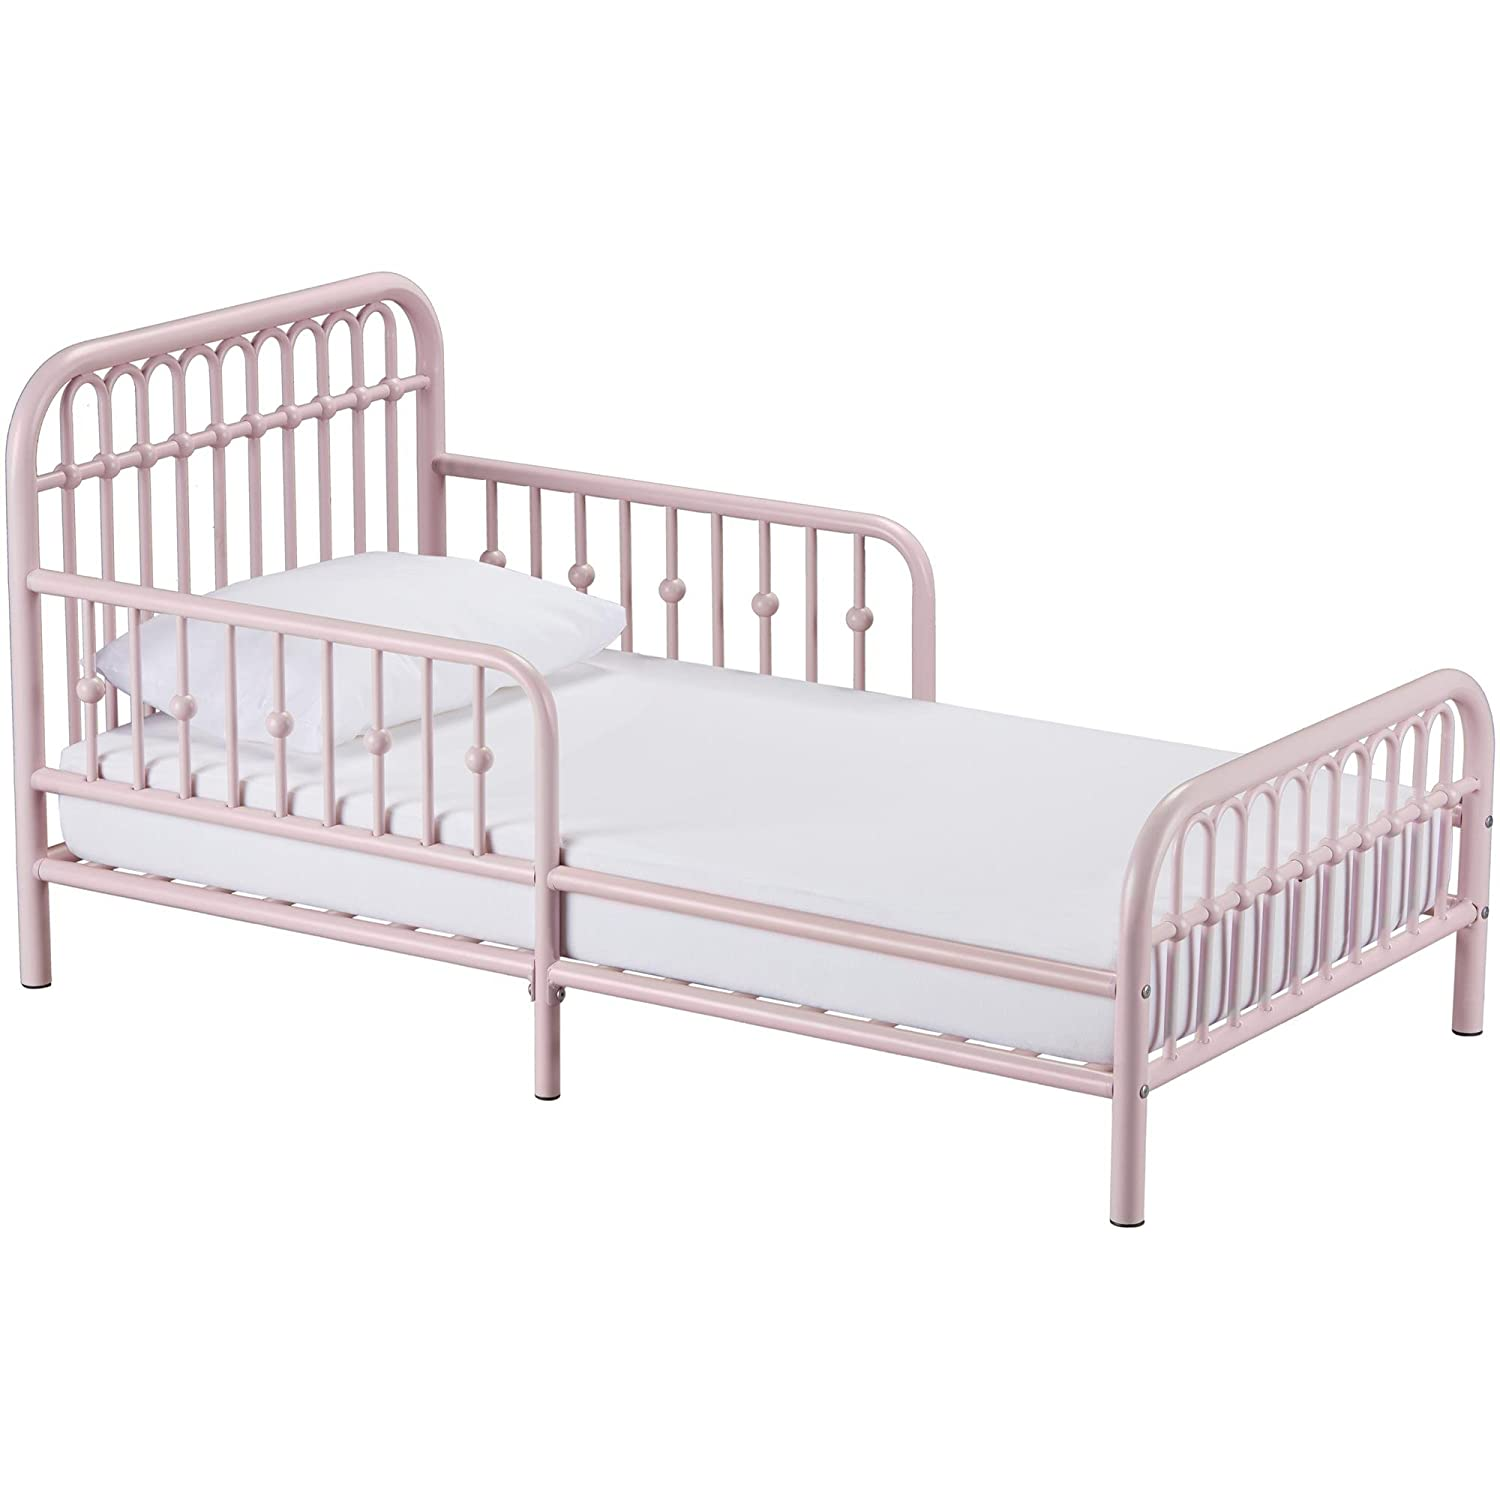 Metal-Toddler-Bed